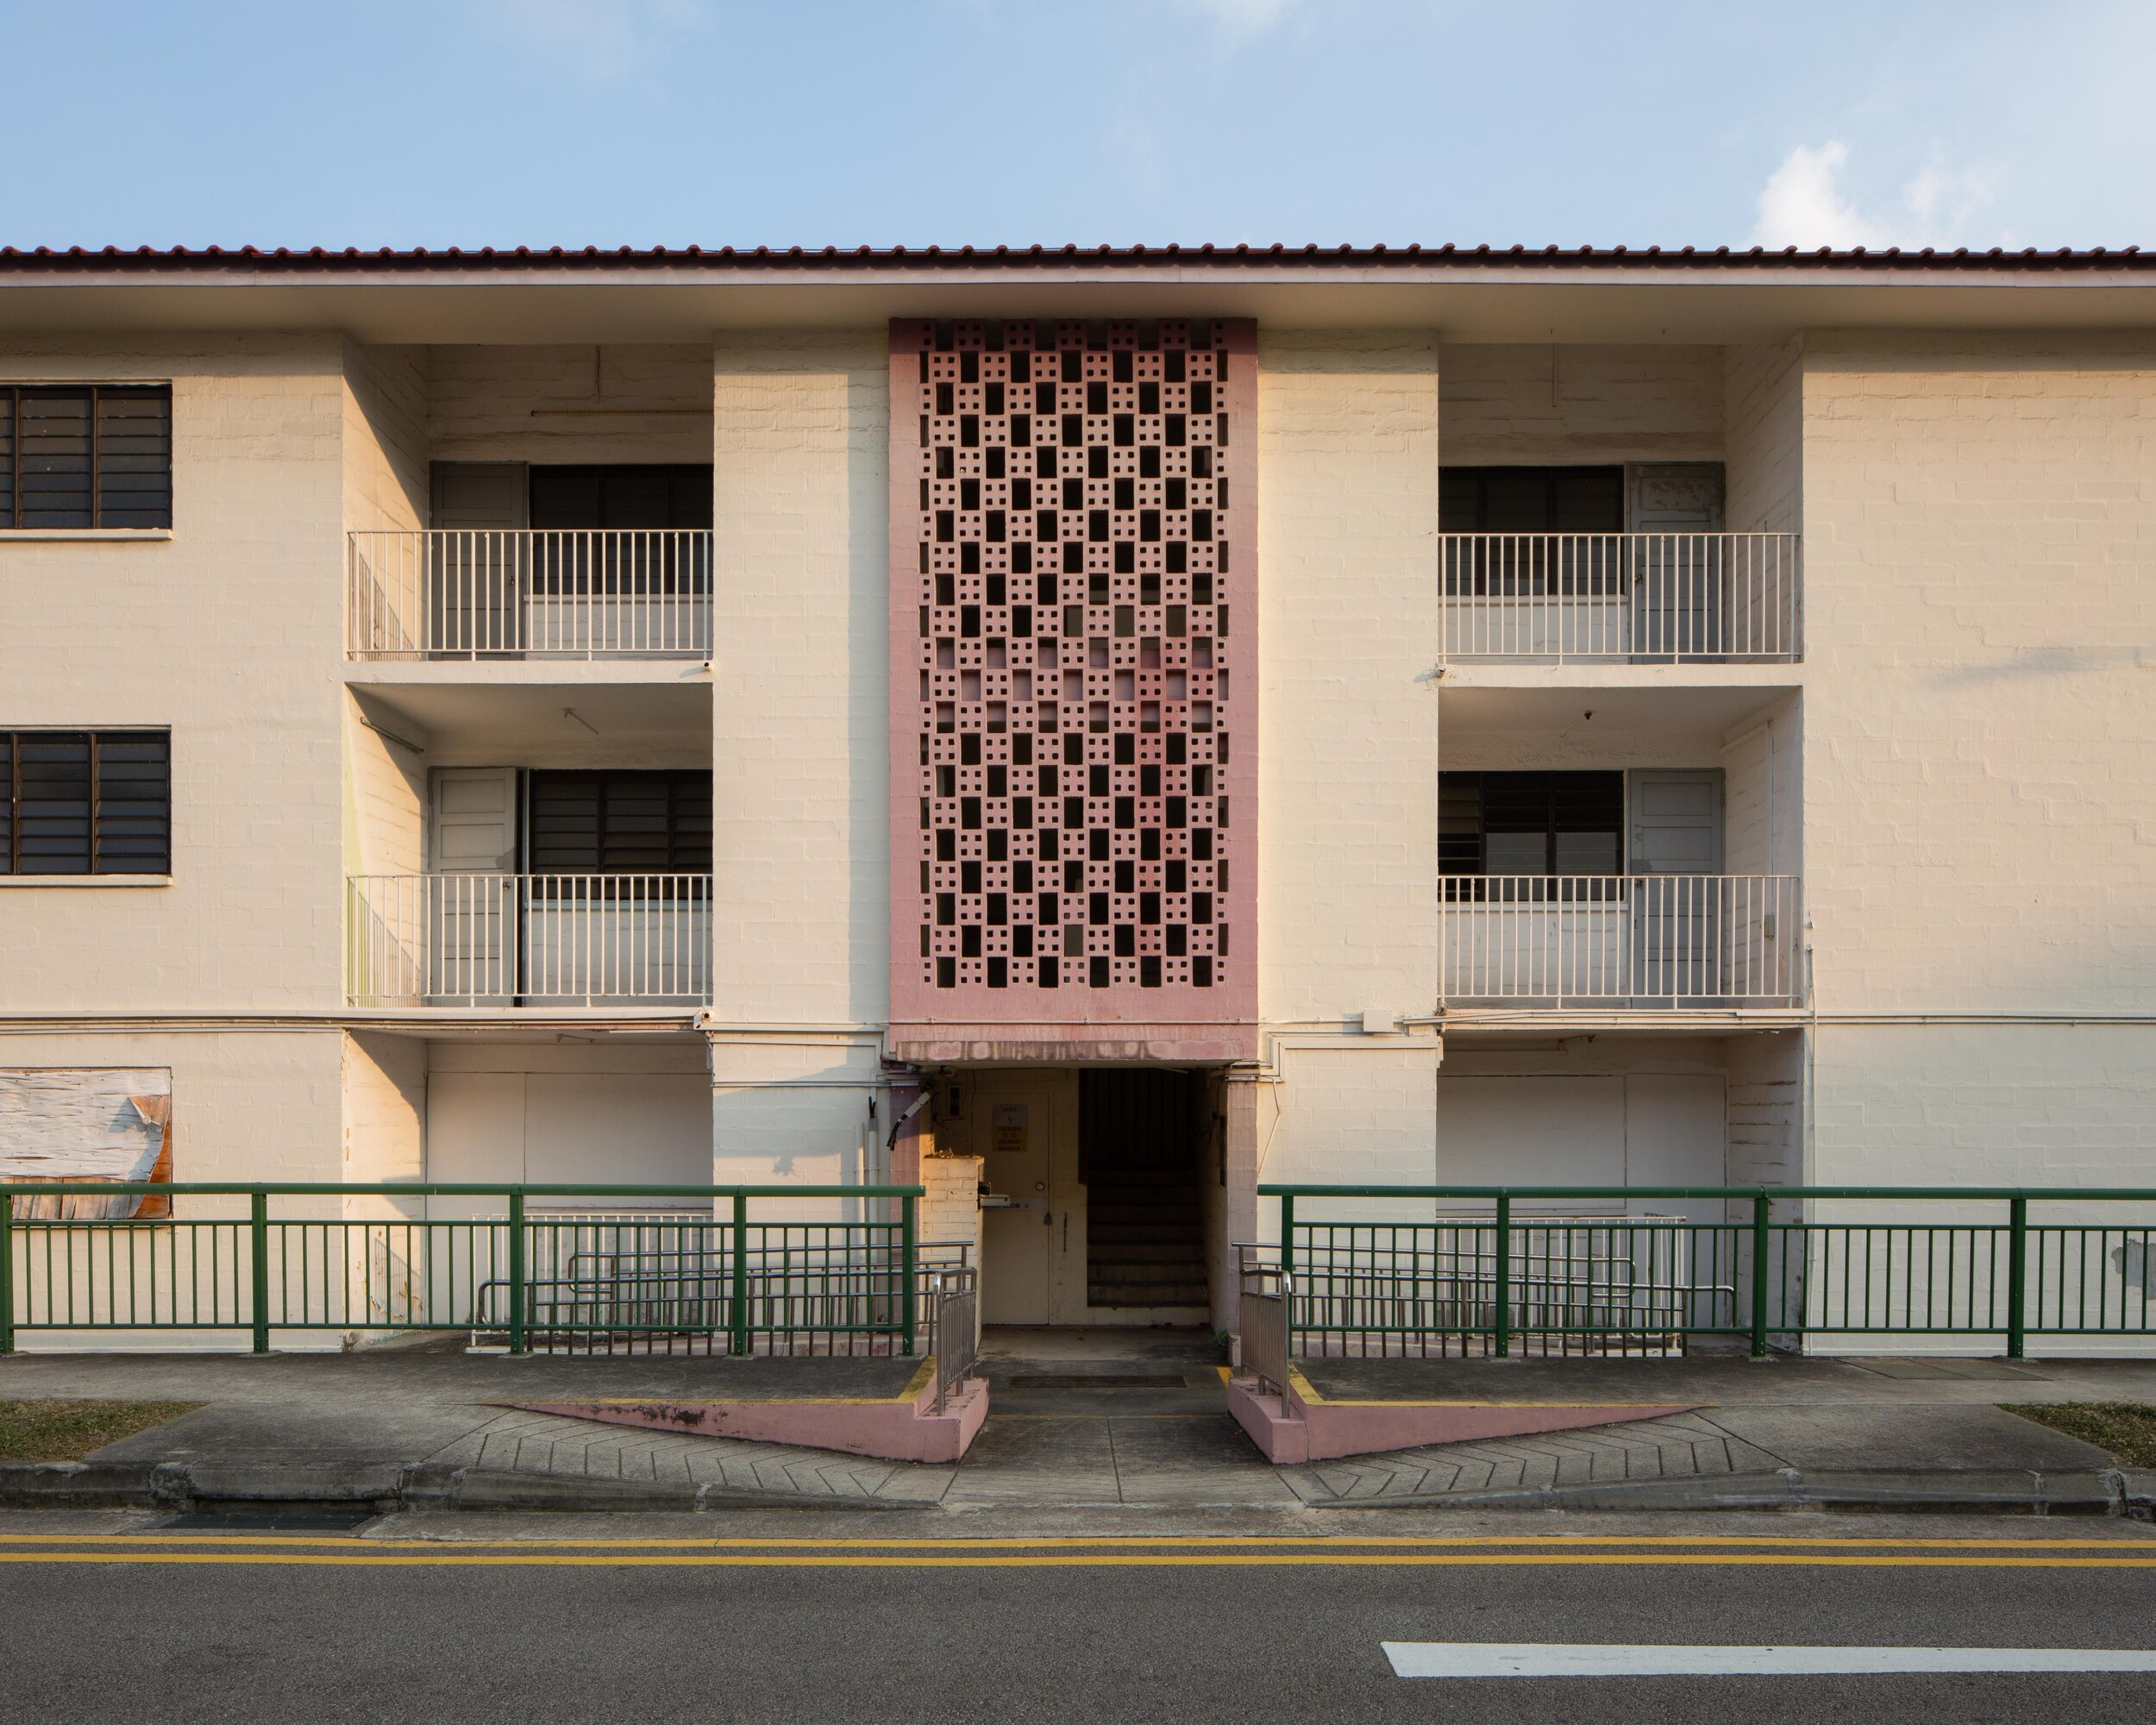 The decorative geometric patterns achieved through simple brick laying